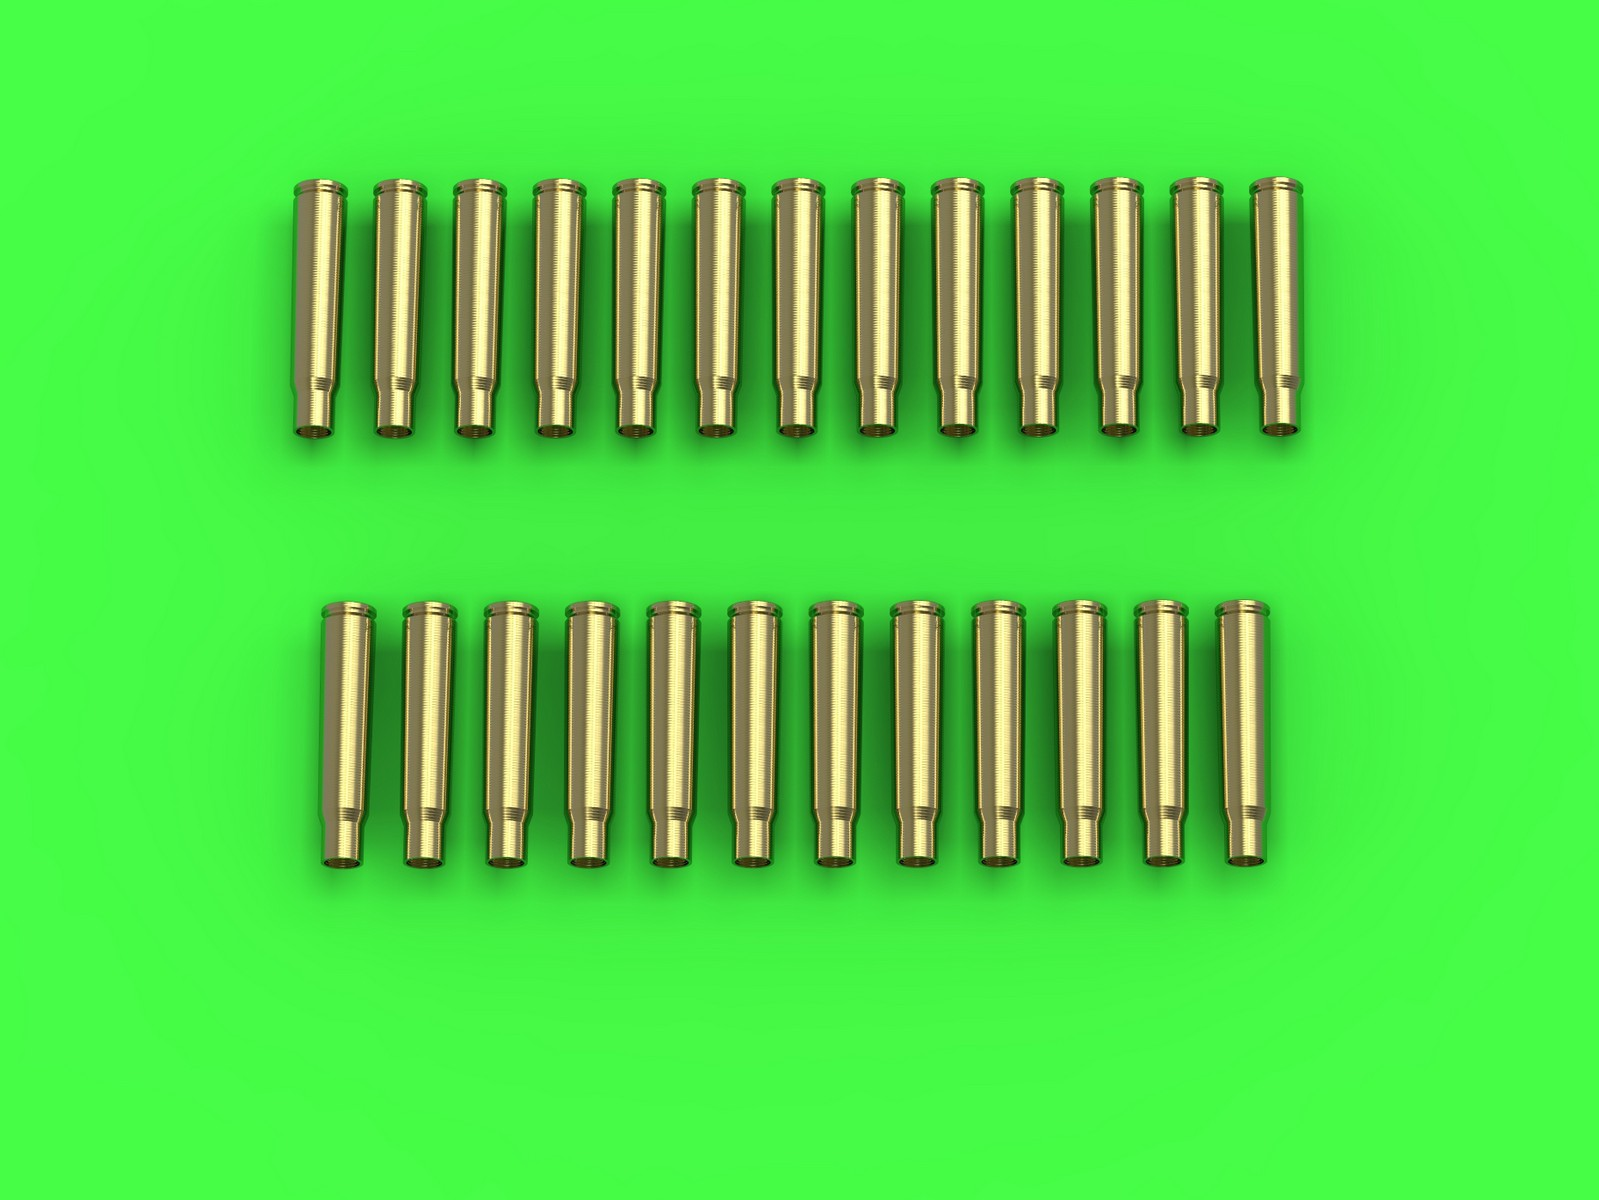 MASTER 1:35 GM35025 MG-34/MG-42 (7.92mm) - empty shells (25pcs)